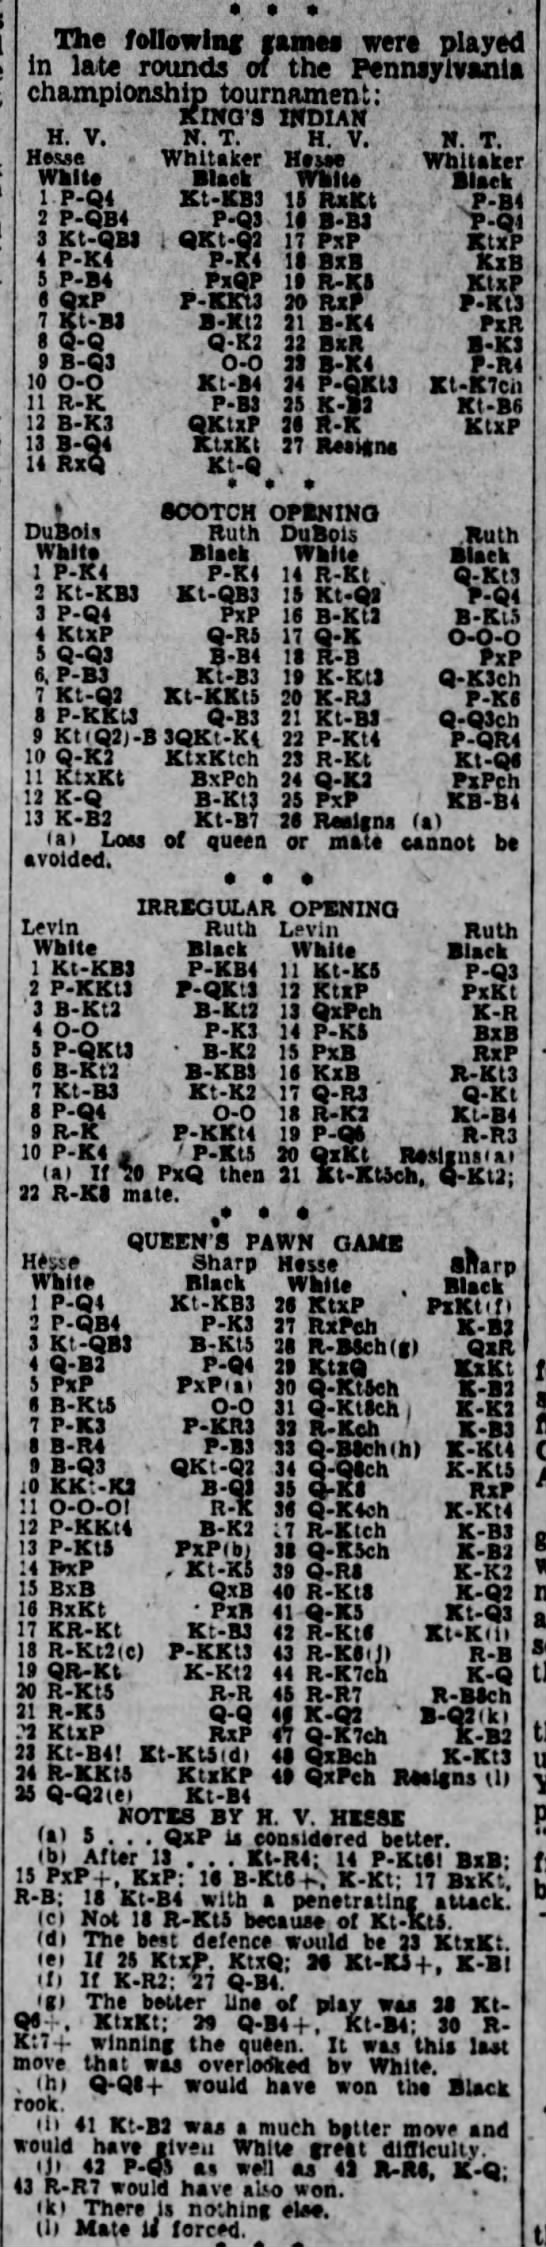 1933 PA State Championship; Hesse-Whitaker, N. T., DuBois-Ruth, Levin-Ruth, Hesse-Sharp, S. T. - e - The following games were played in i&ie...